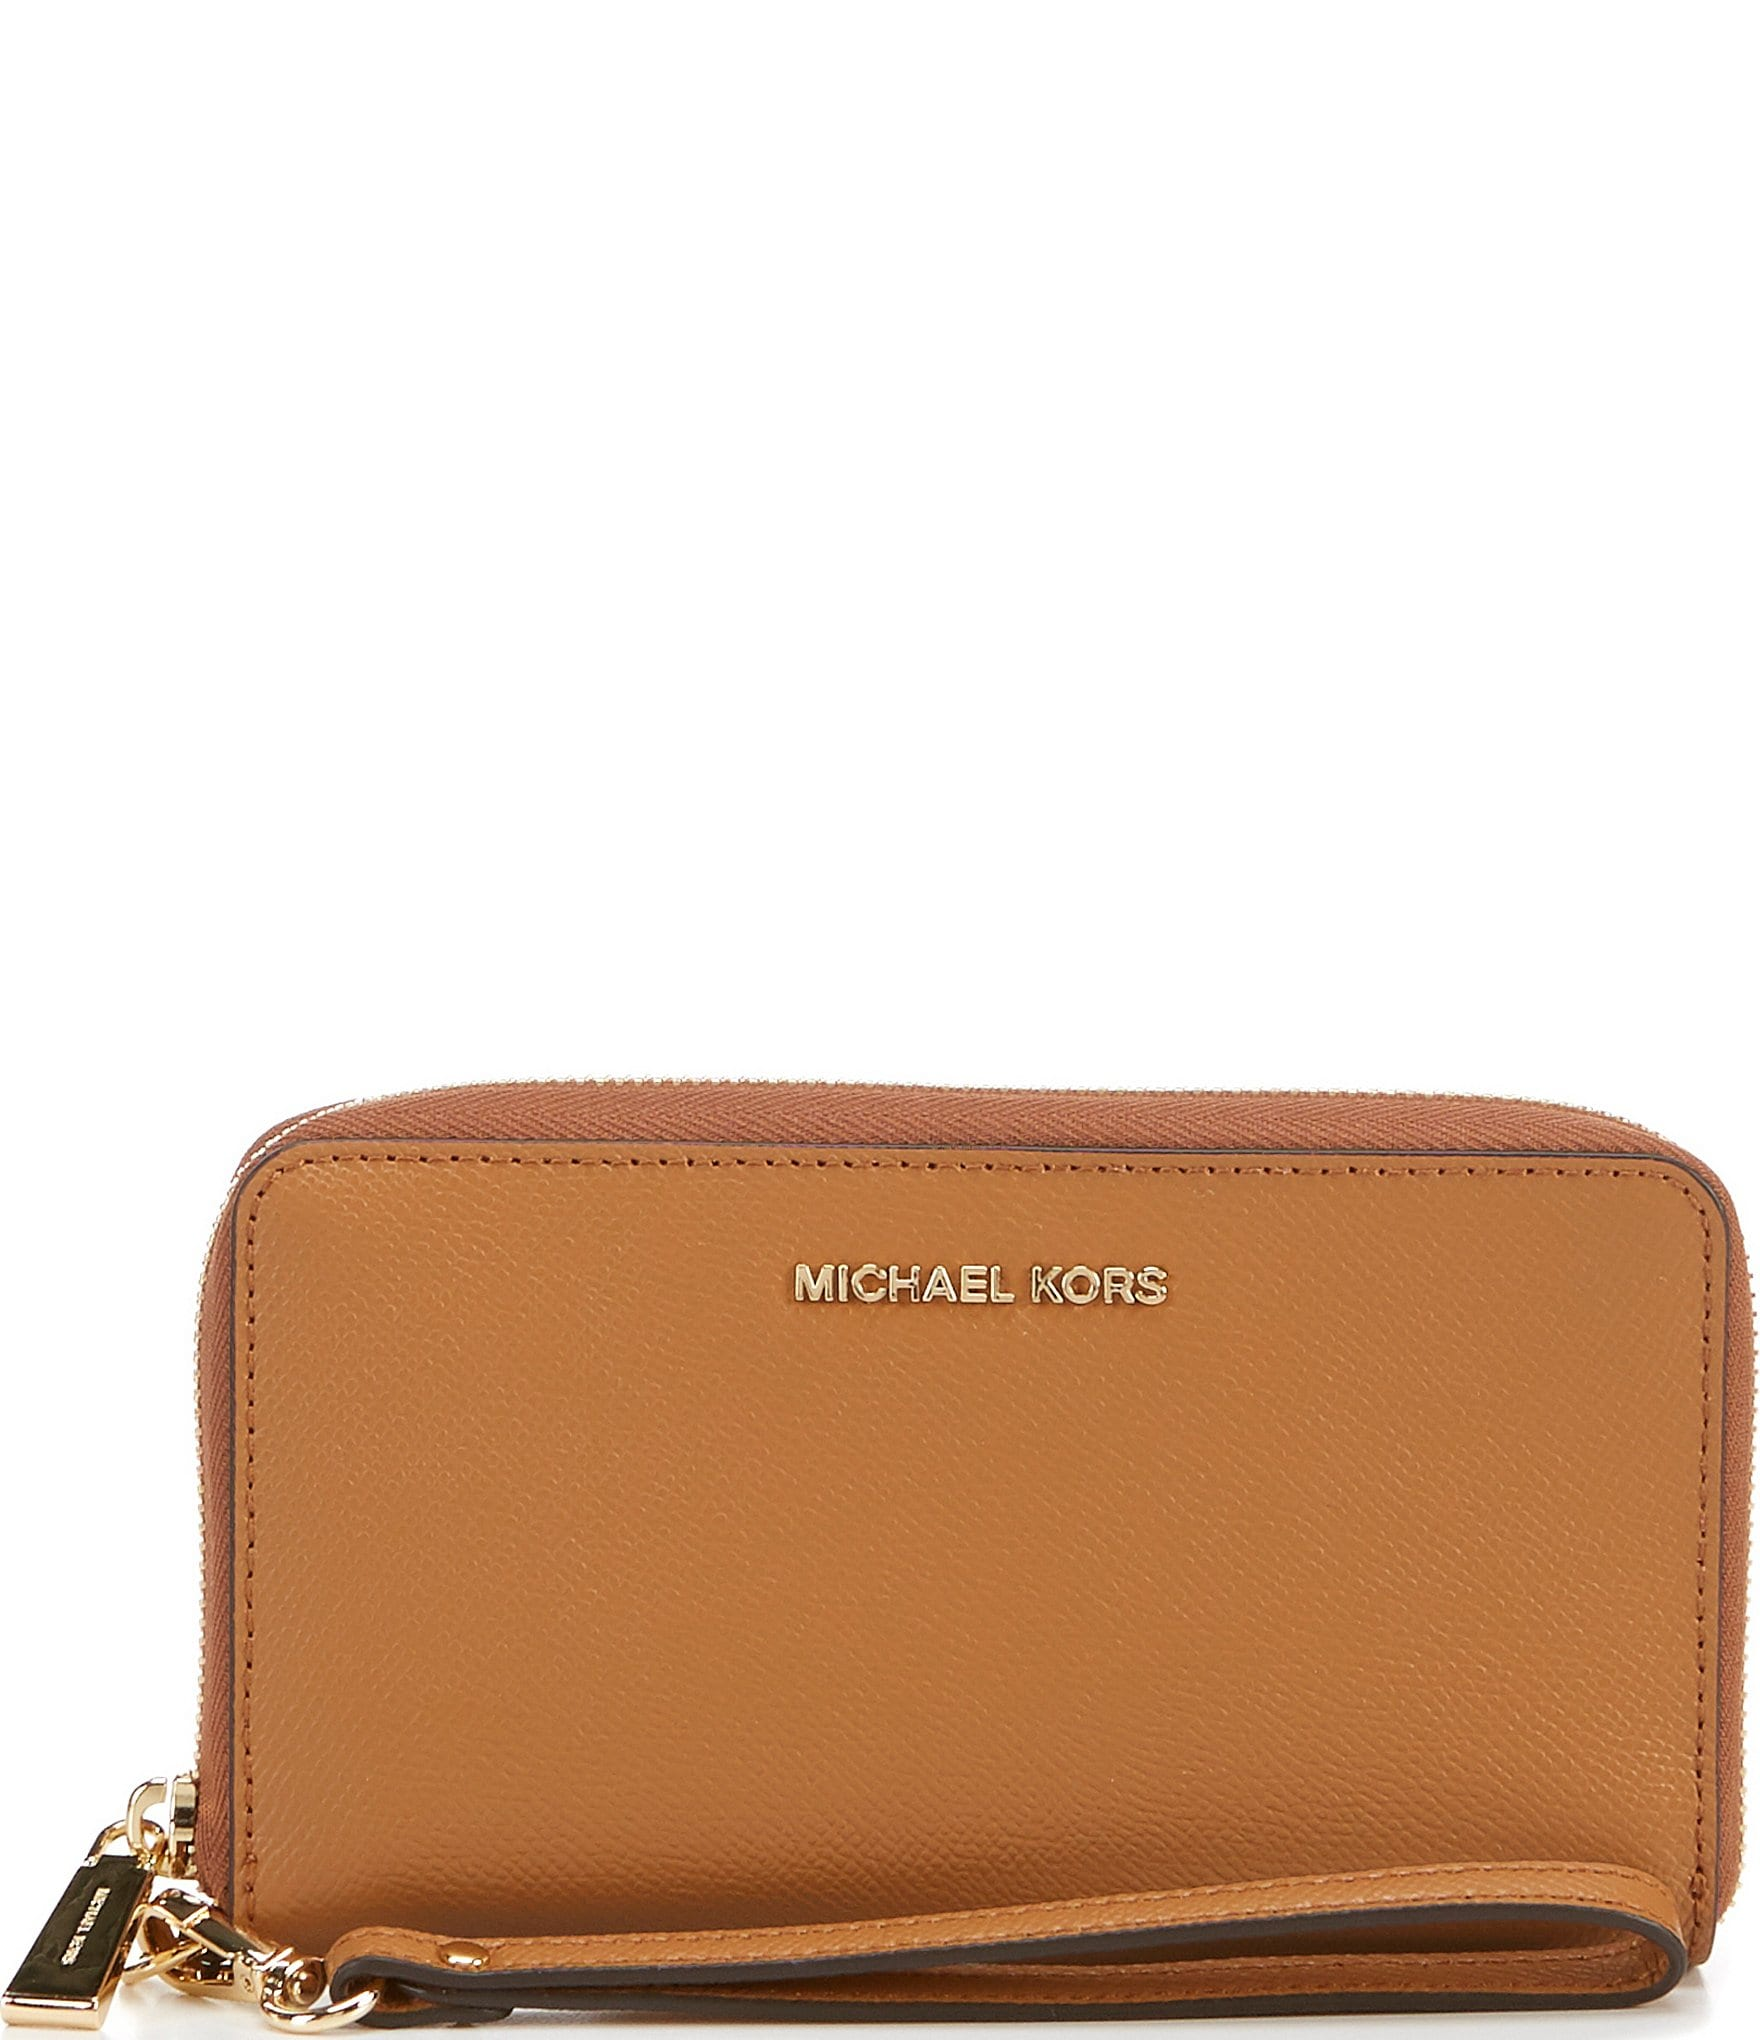 3f228389f347 MICHAEL Michael Kors Jet Set Large Flat Multifunction Phone Case ...